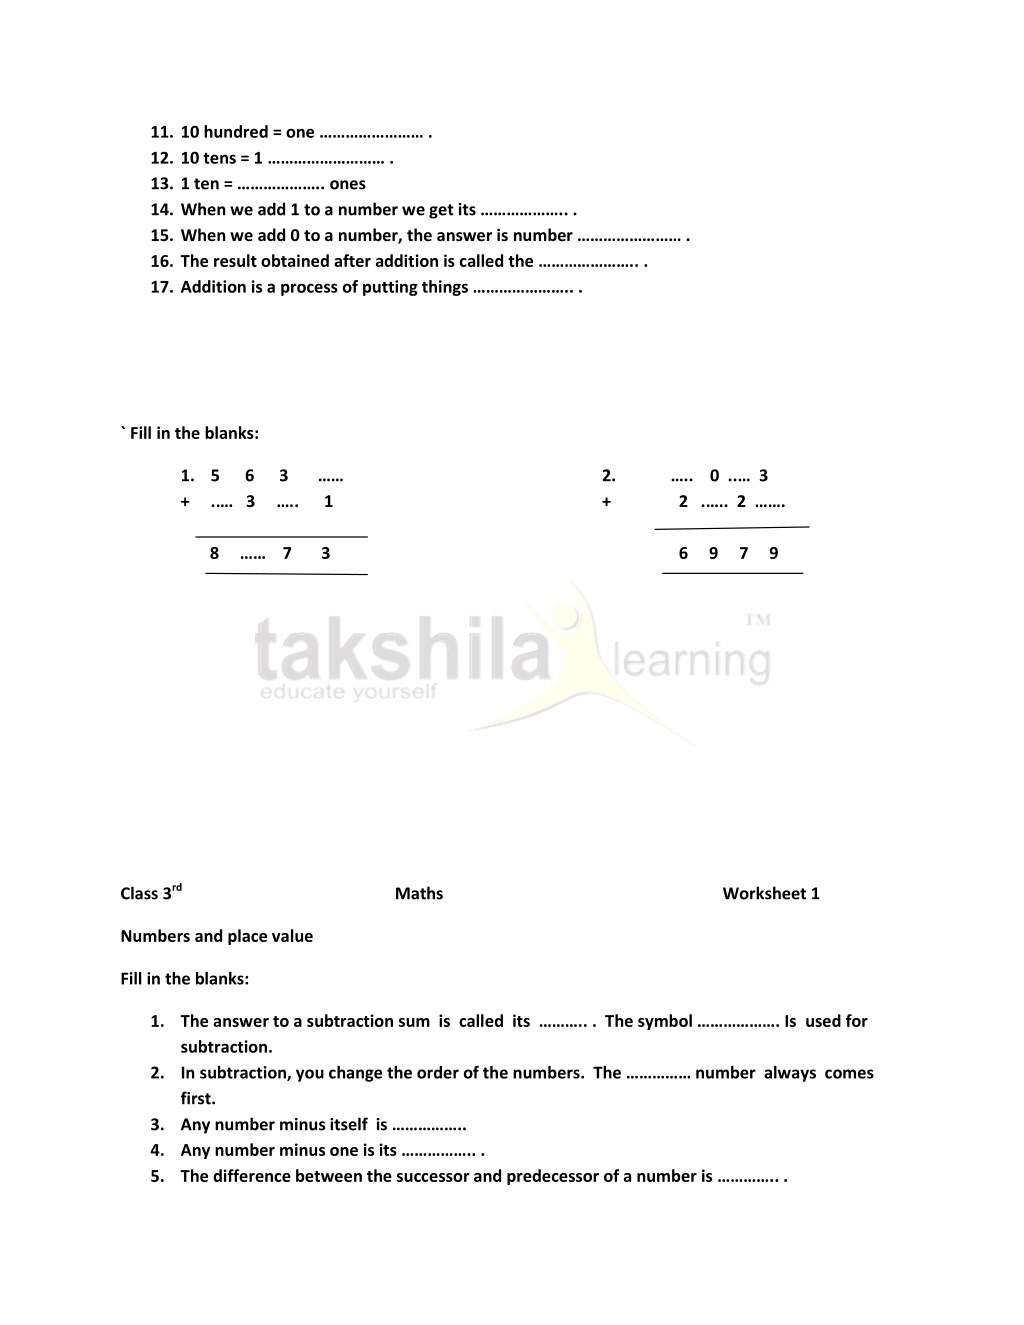 PPT - Practice Worksheet for Class 3 Maths - Numbers and